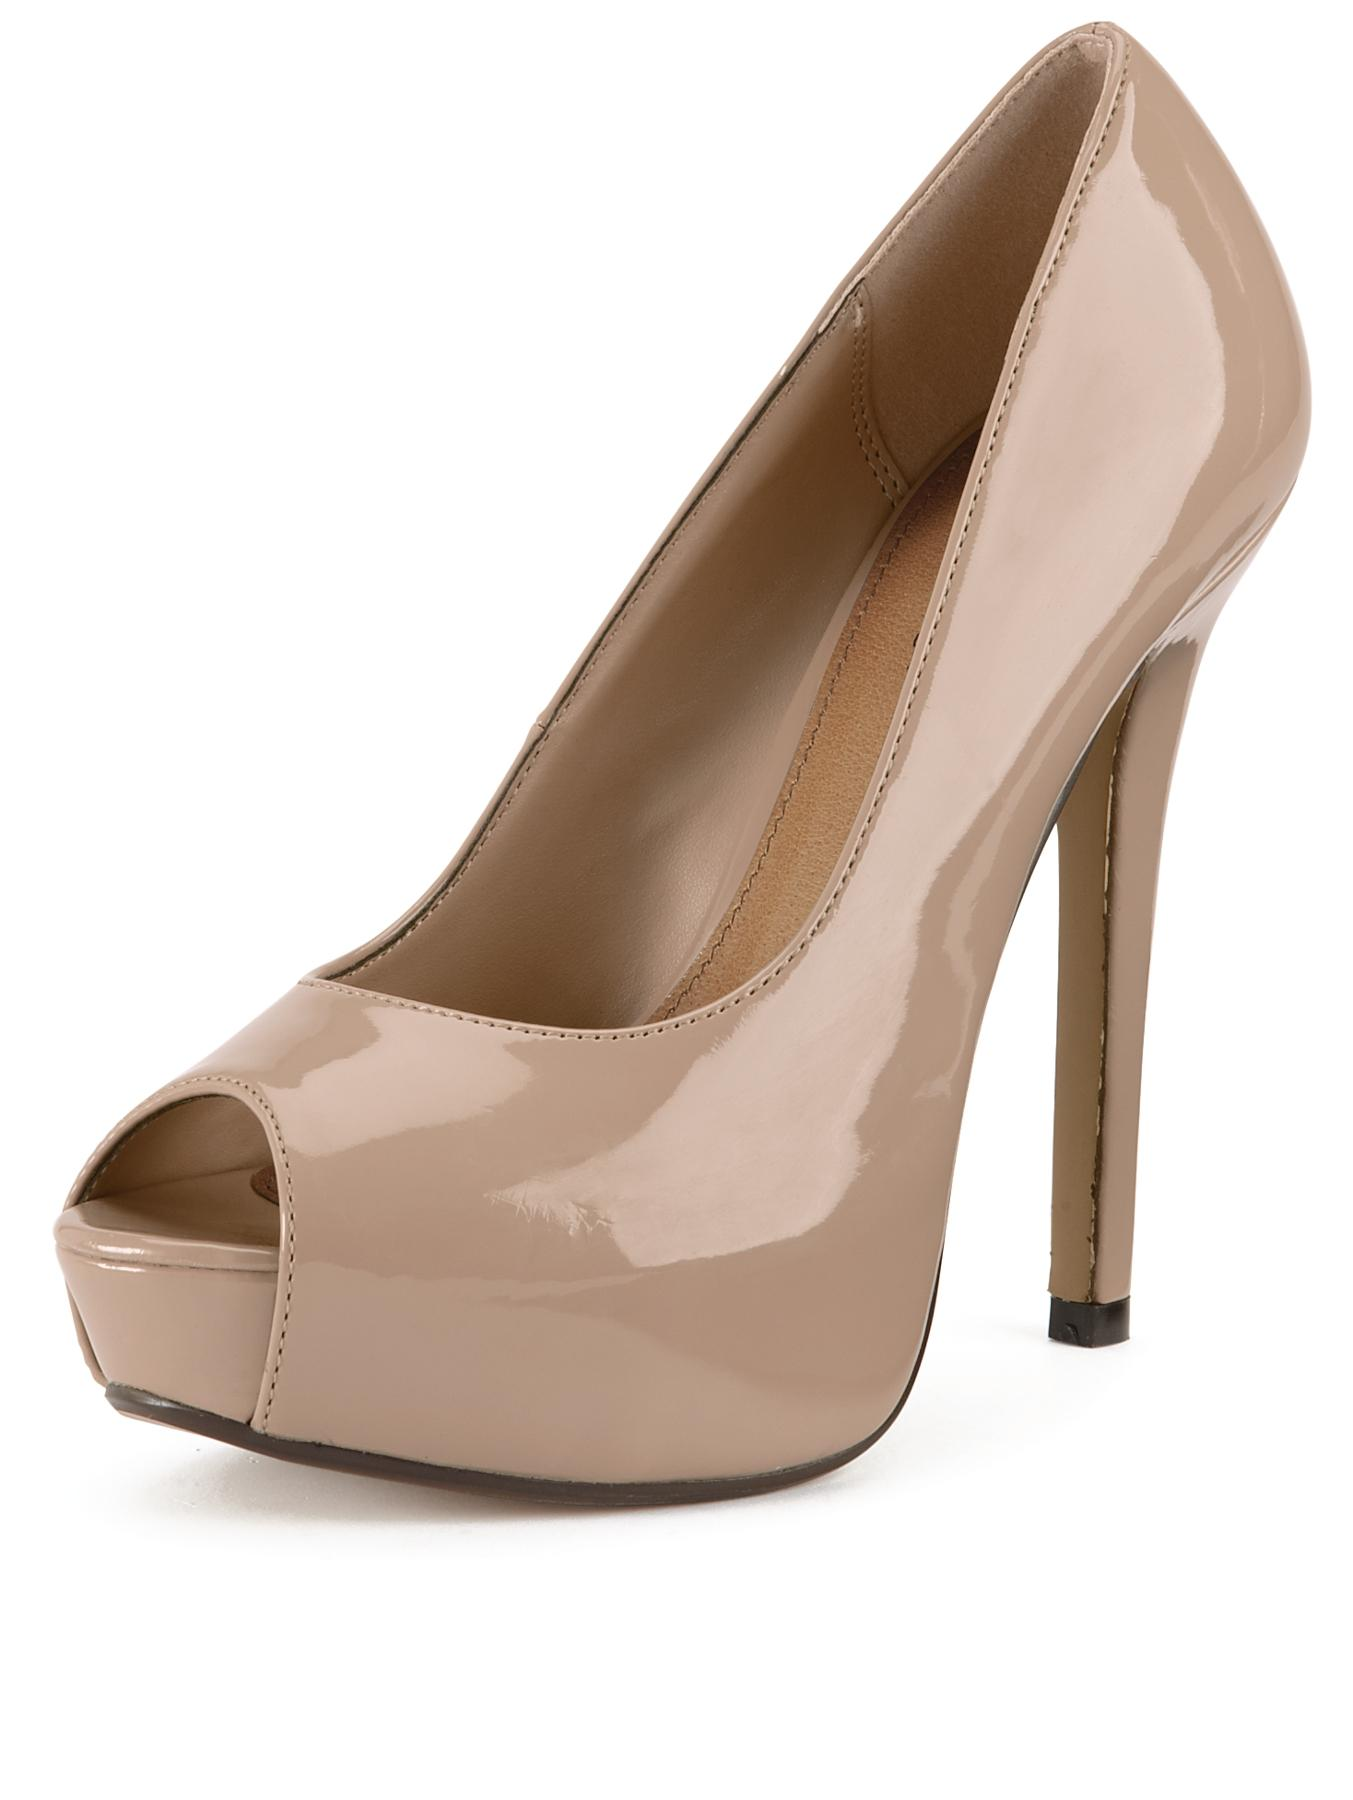 Shoe Box Ferrera Open Toe Platform Court Shoe